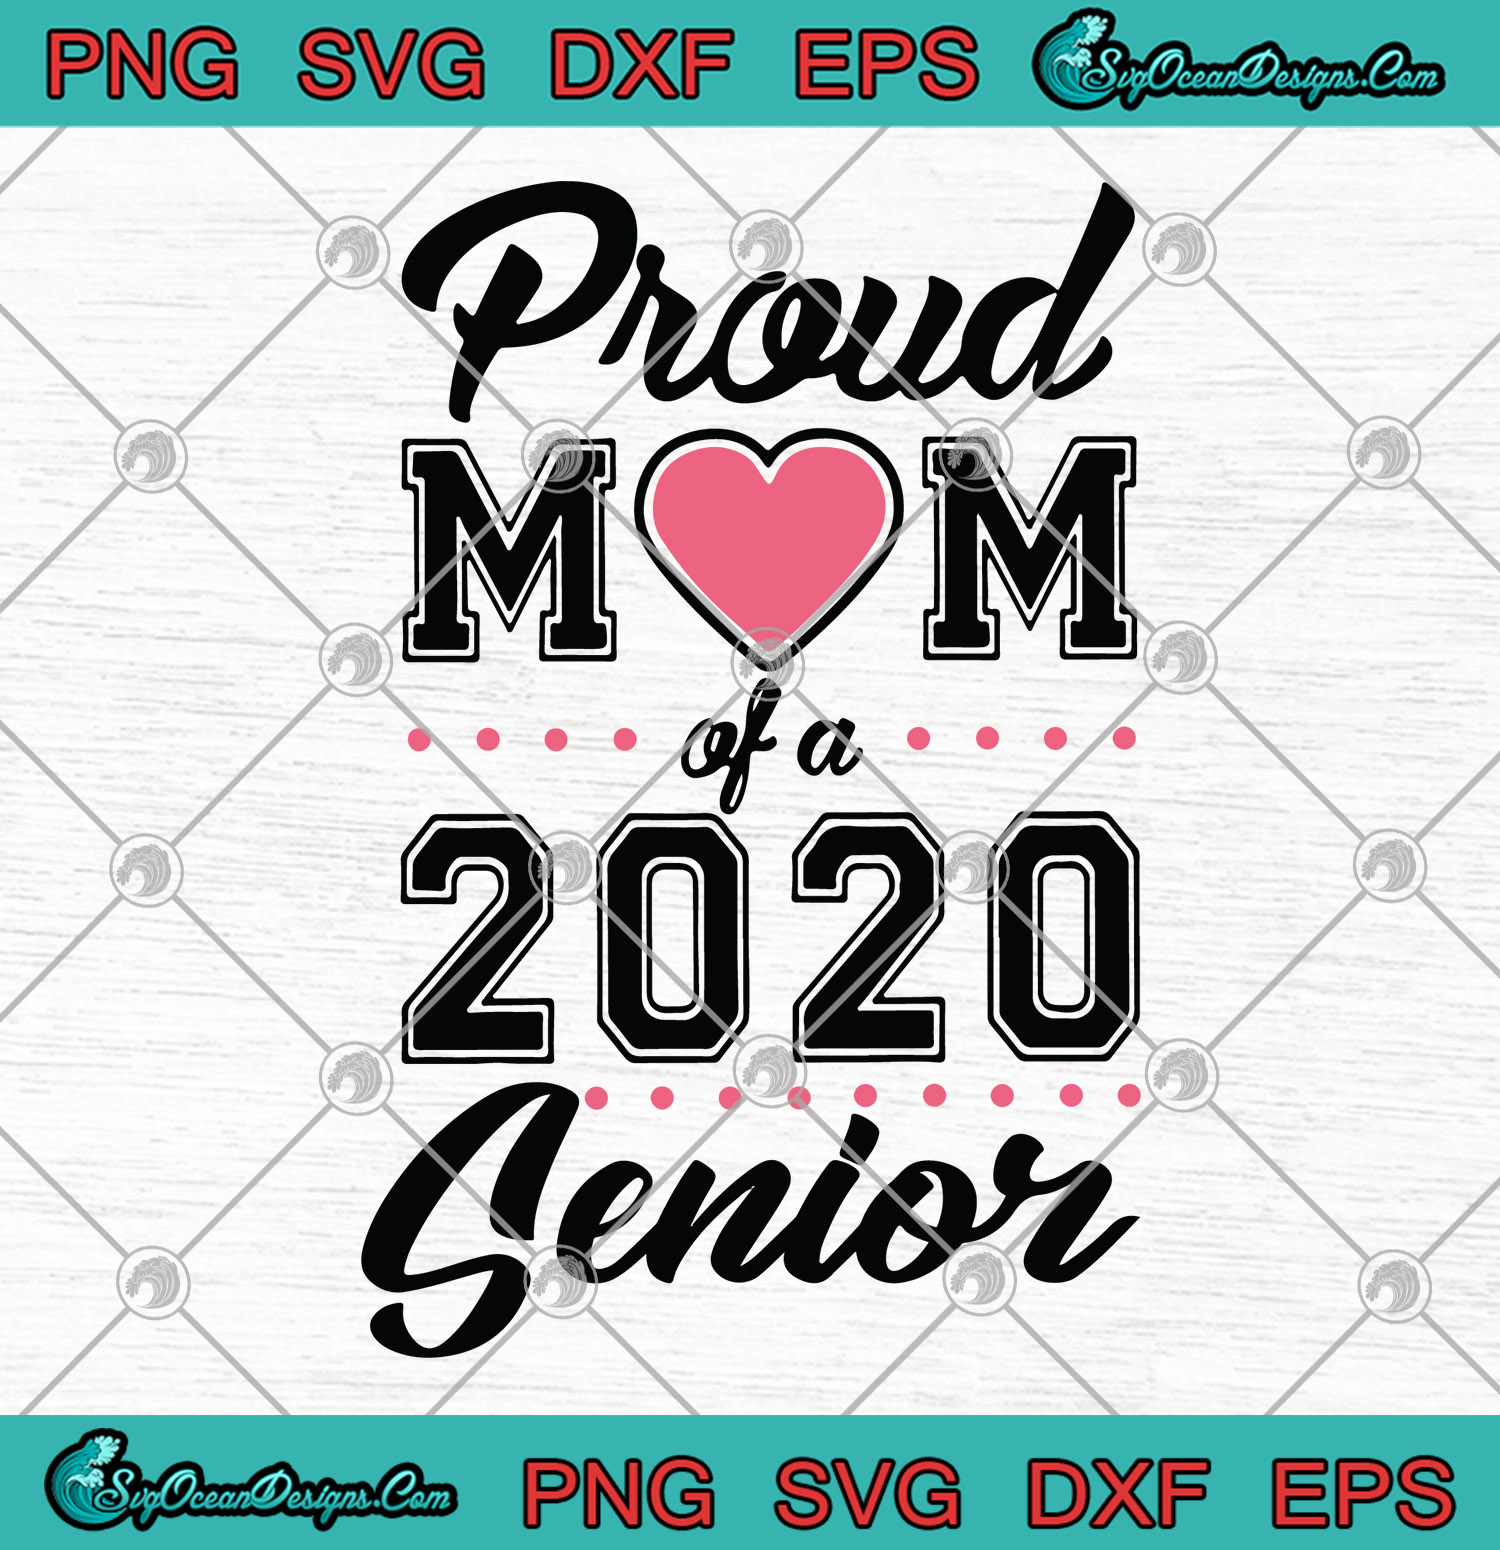 Proud Mom Of A 2020 Senior Class Of 2020 Svg Png Dxf Eps Senior Class Of 2020 Cutting File Cricut Silhouette Art Designs Digital Download